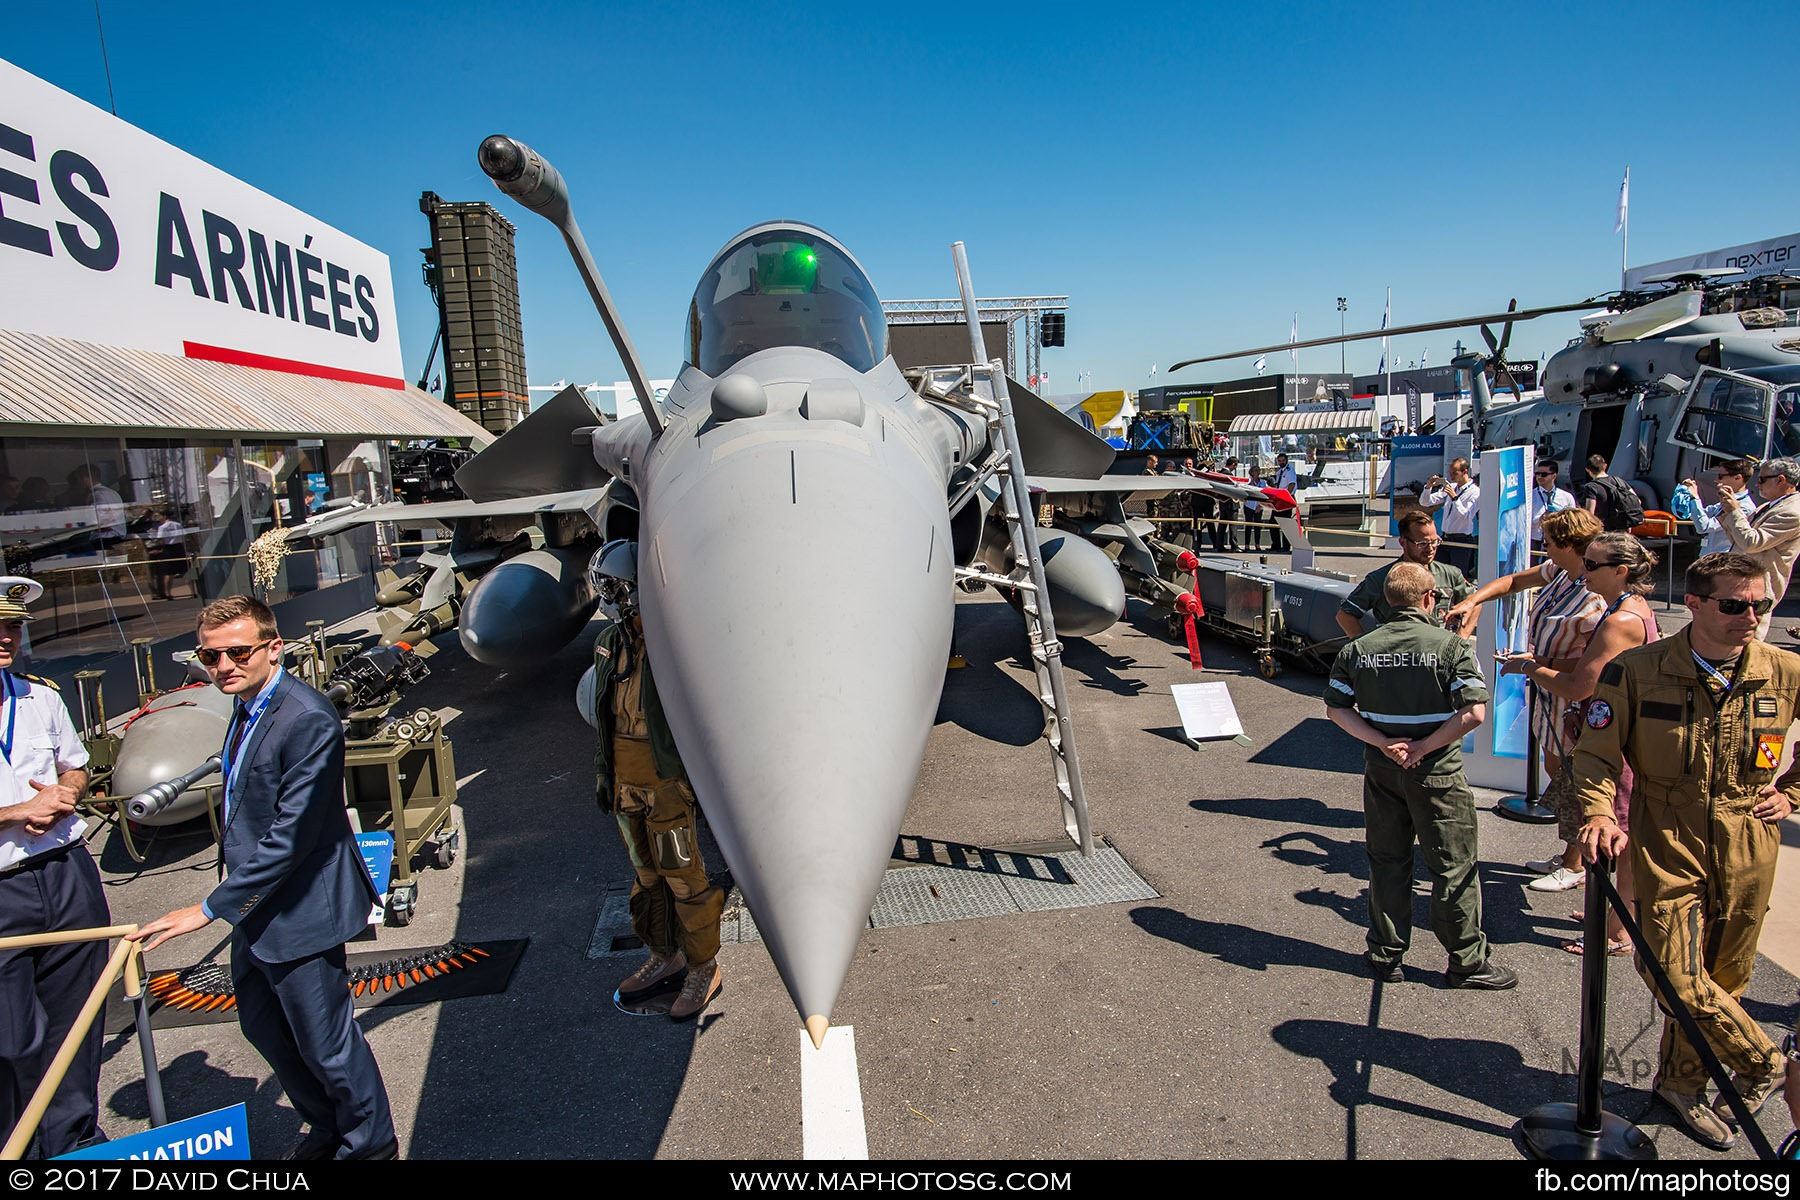 19. French Air Force Rafale C with stores display at the Ministry of Defence static area. Pilots and ground crew were on hand to give visitors an insight into their job and the Rafale.